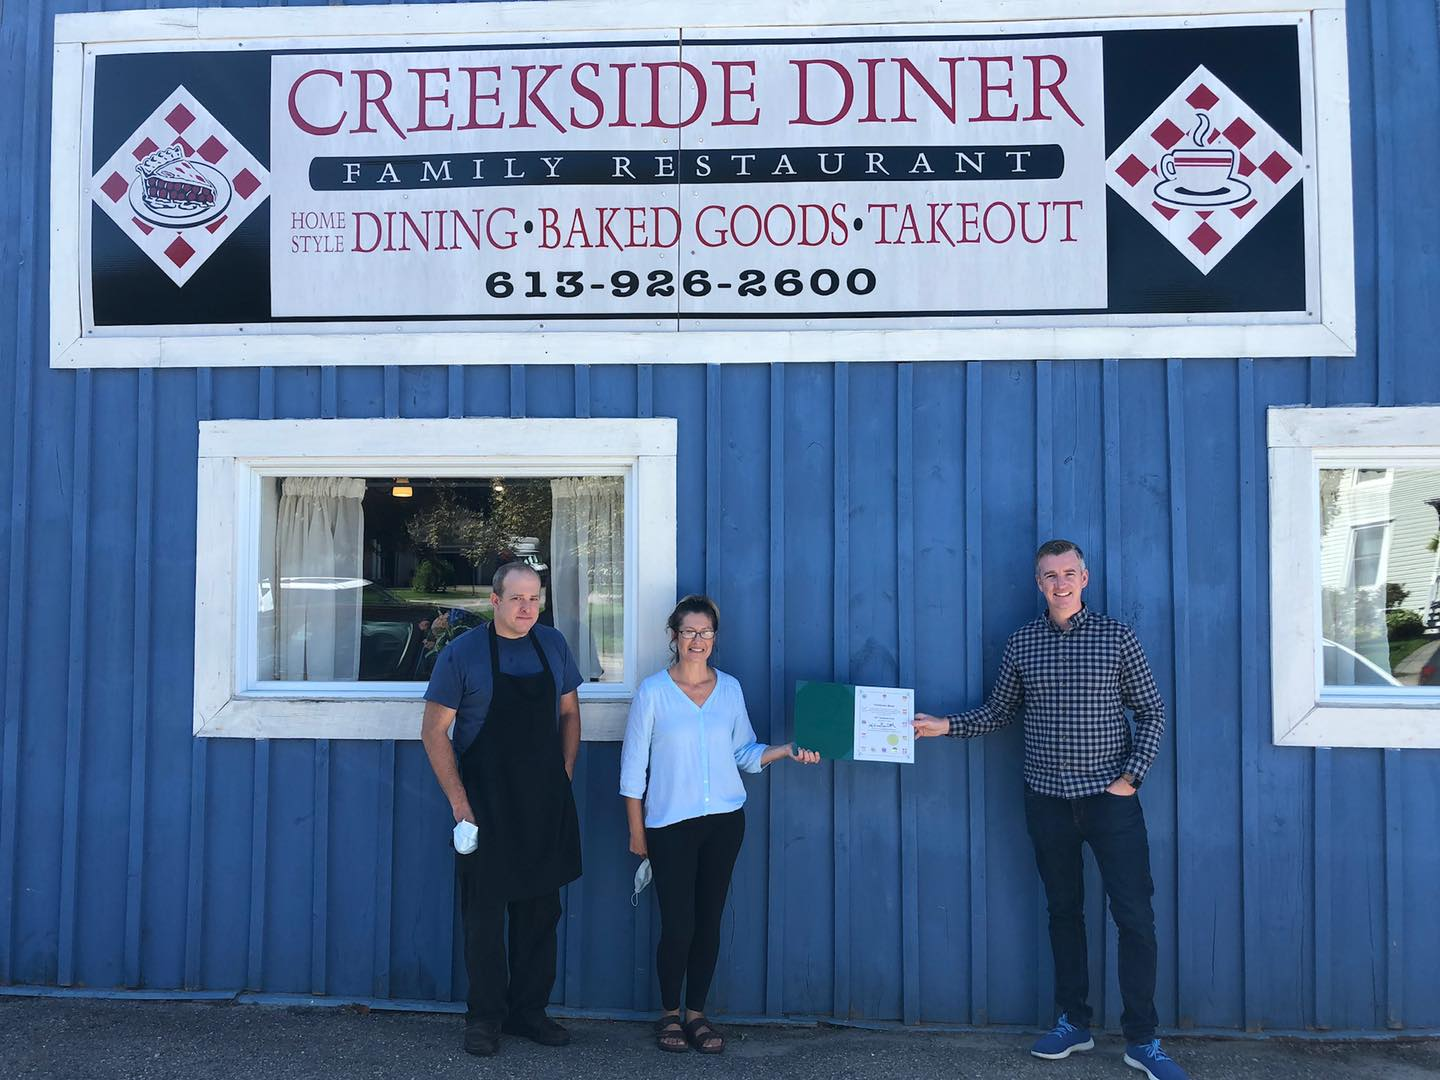 Congratulating Creekside Diner on 10 Years